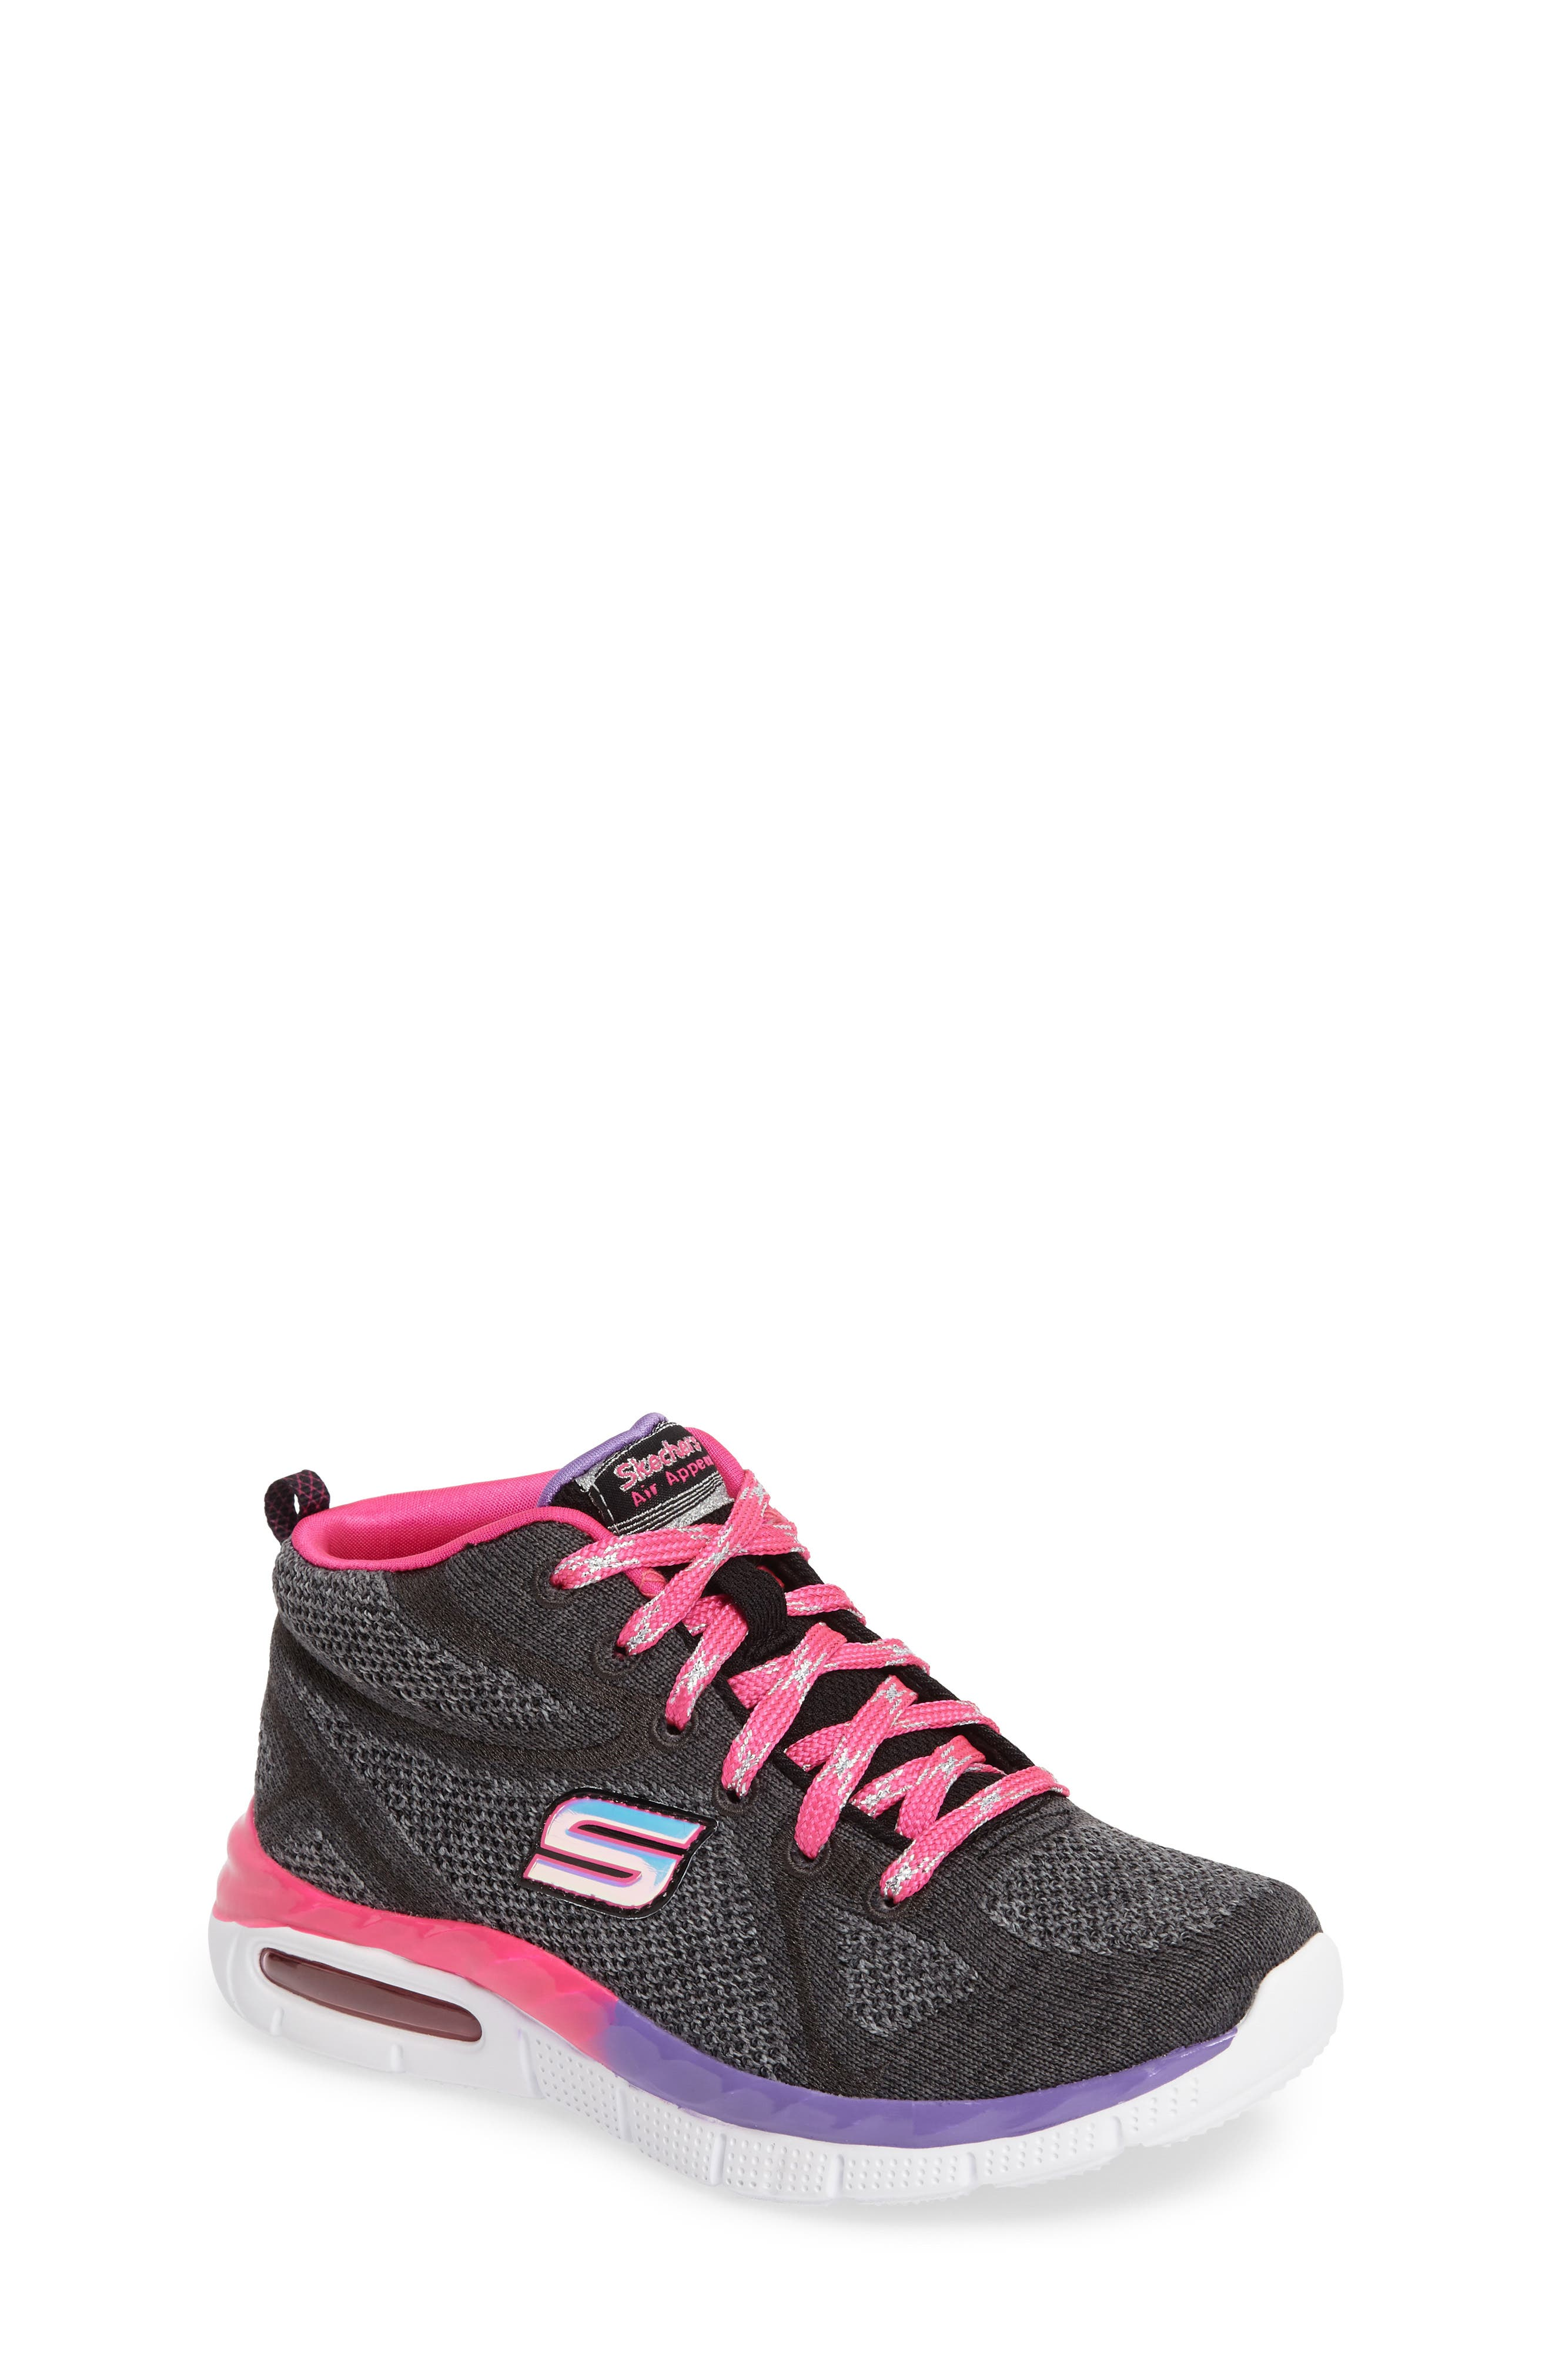 SKECHERS Air Appeal Breezin' By Sneaker (Toddler, Little Kid & Big Kid)